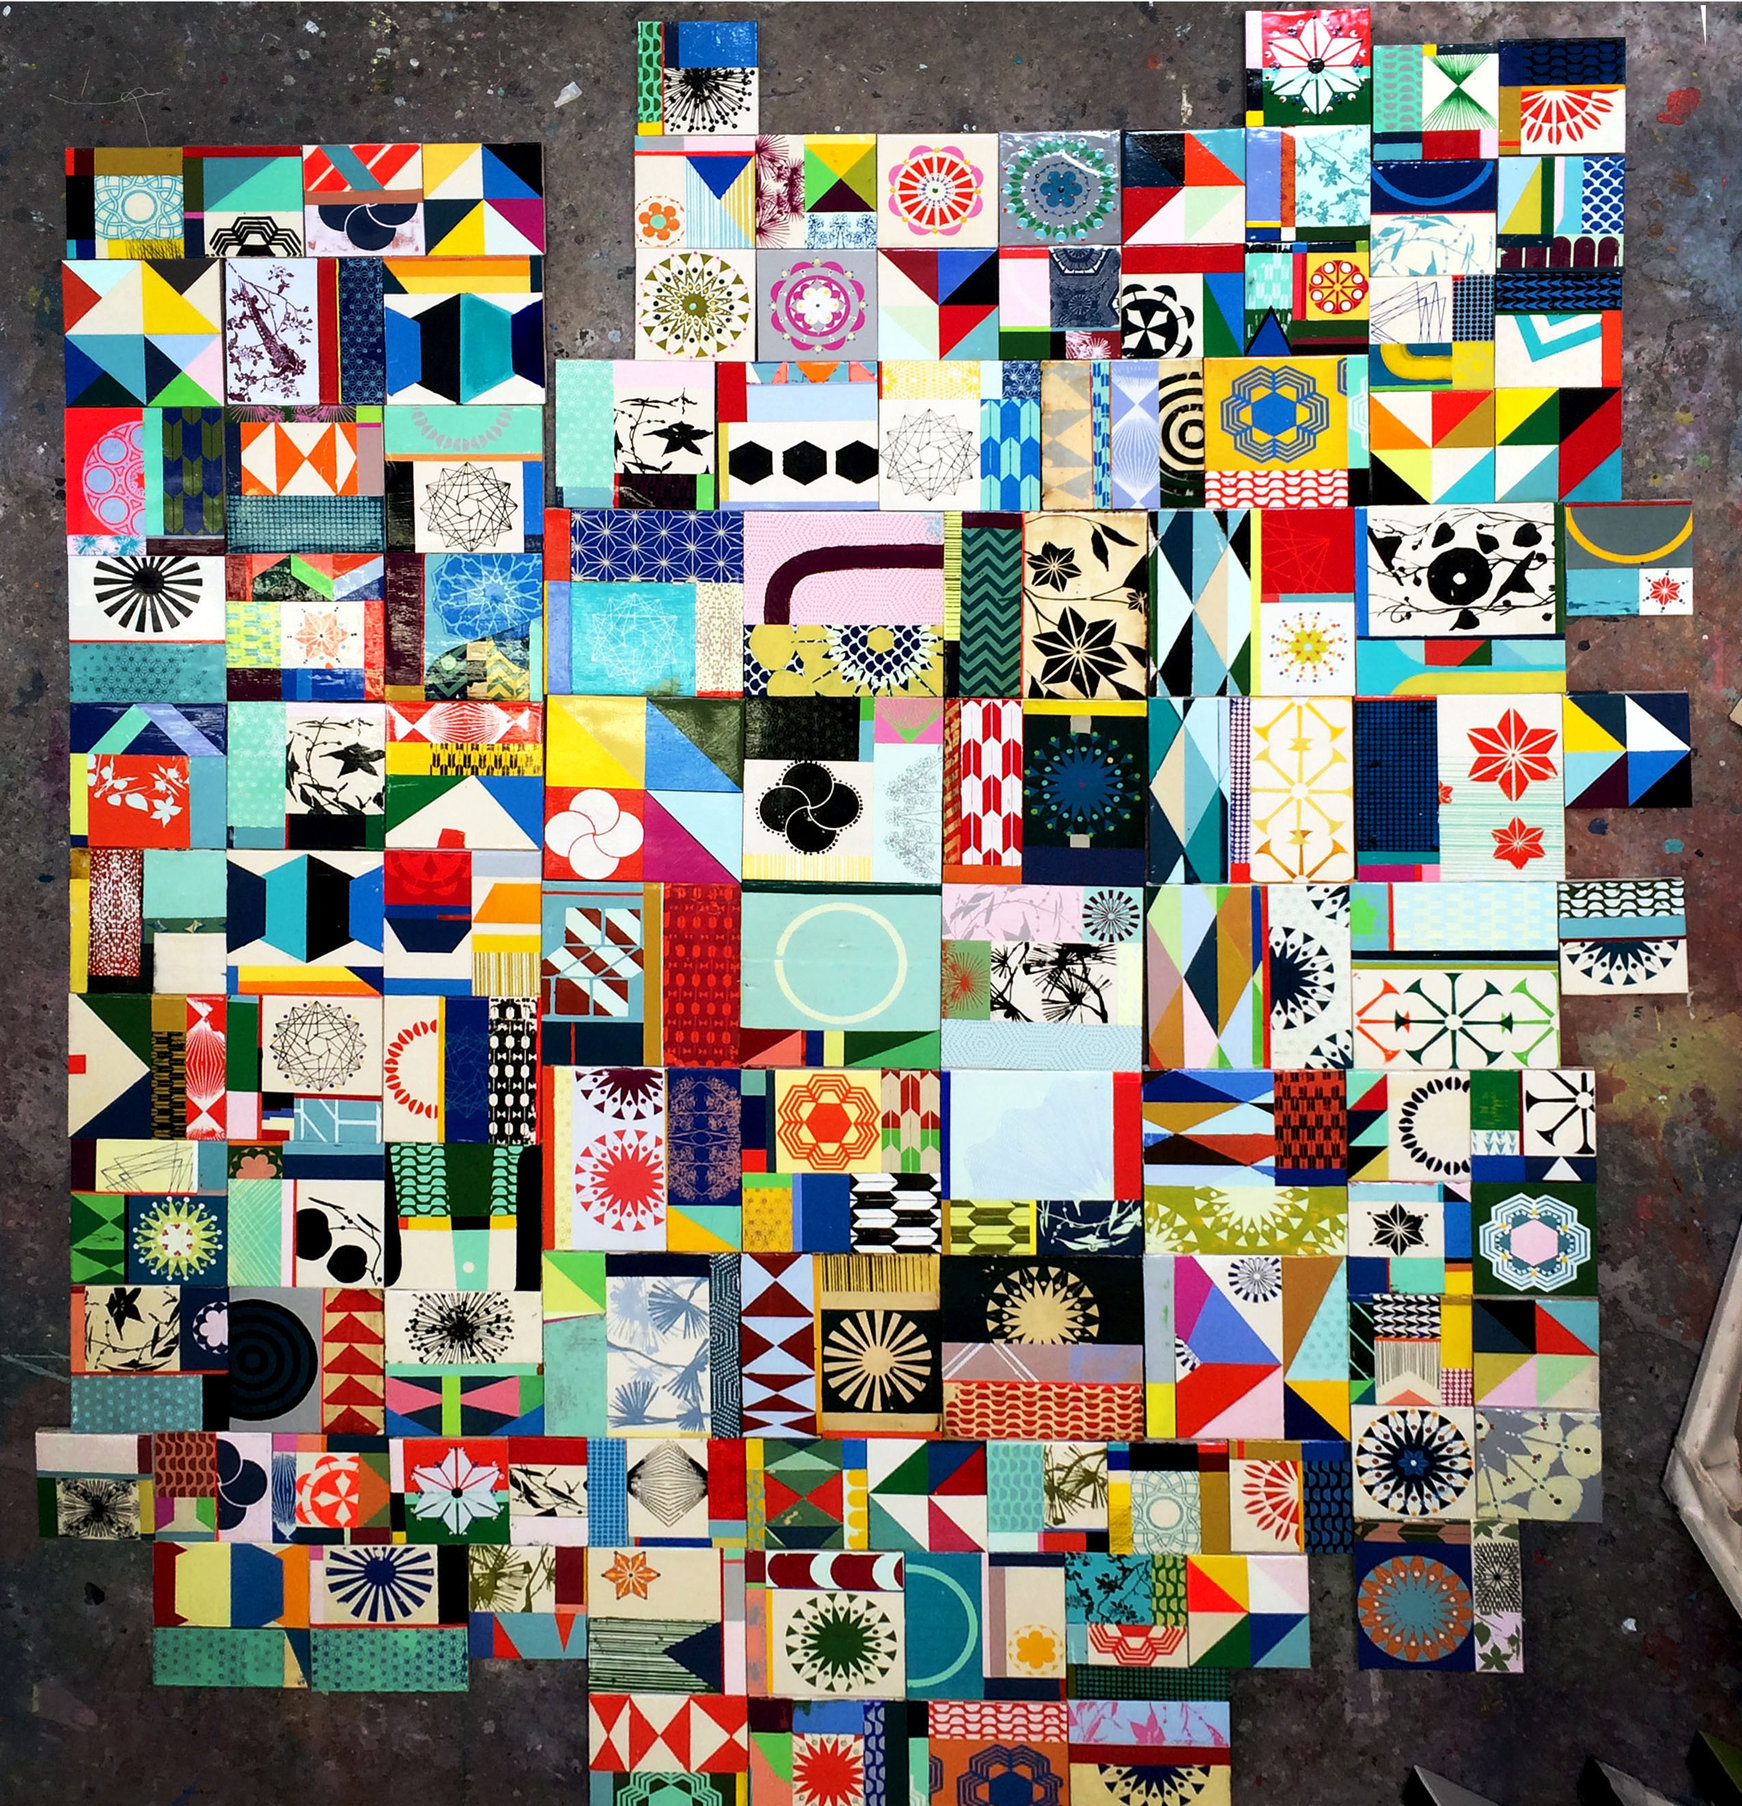 "8""x8"" blocks that explore color, pattern, geometries and nature references - this is a small group from 200 pieces total"